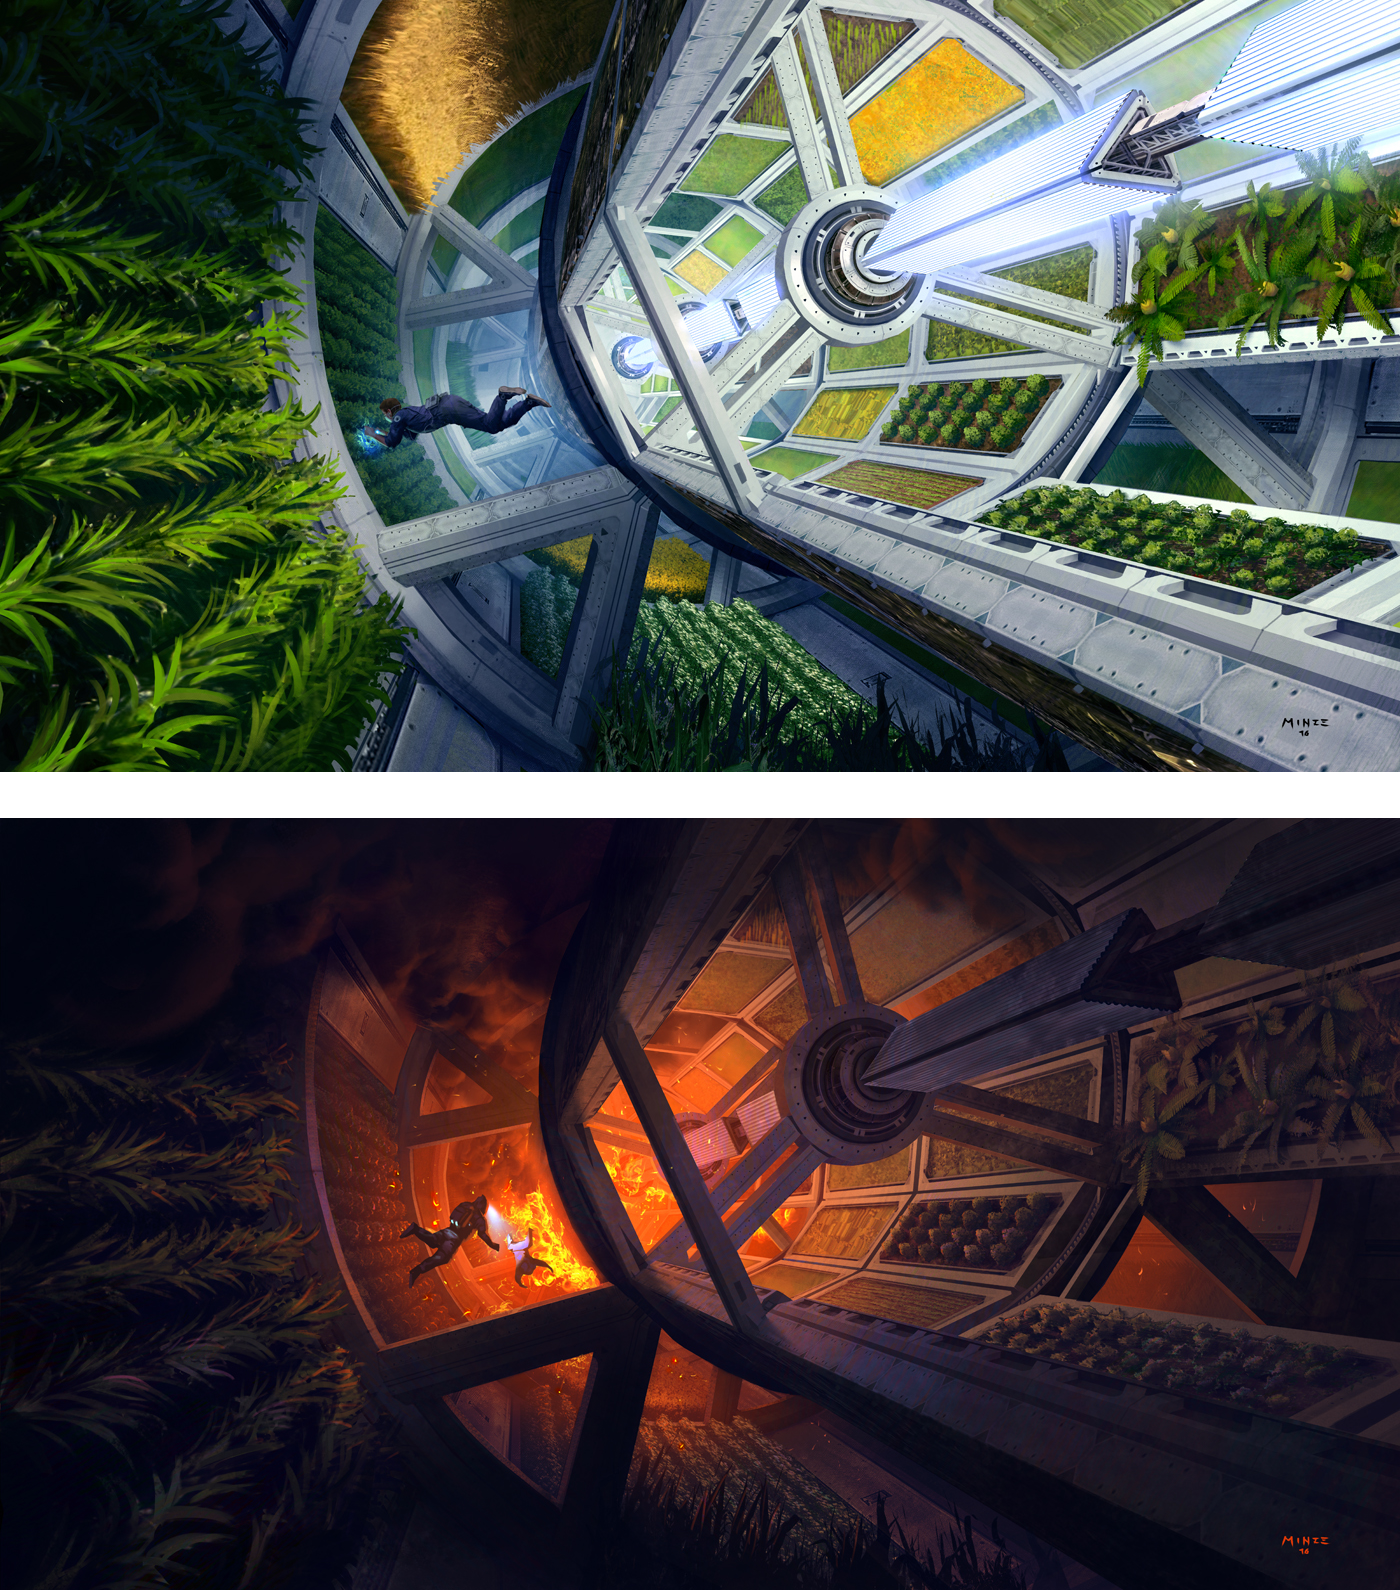 greenhouse space station - photo #22